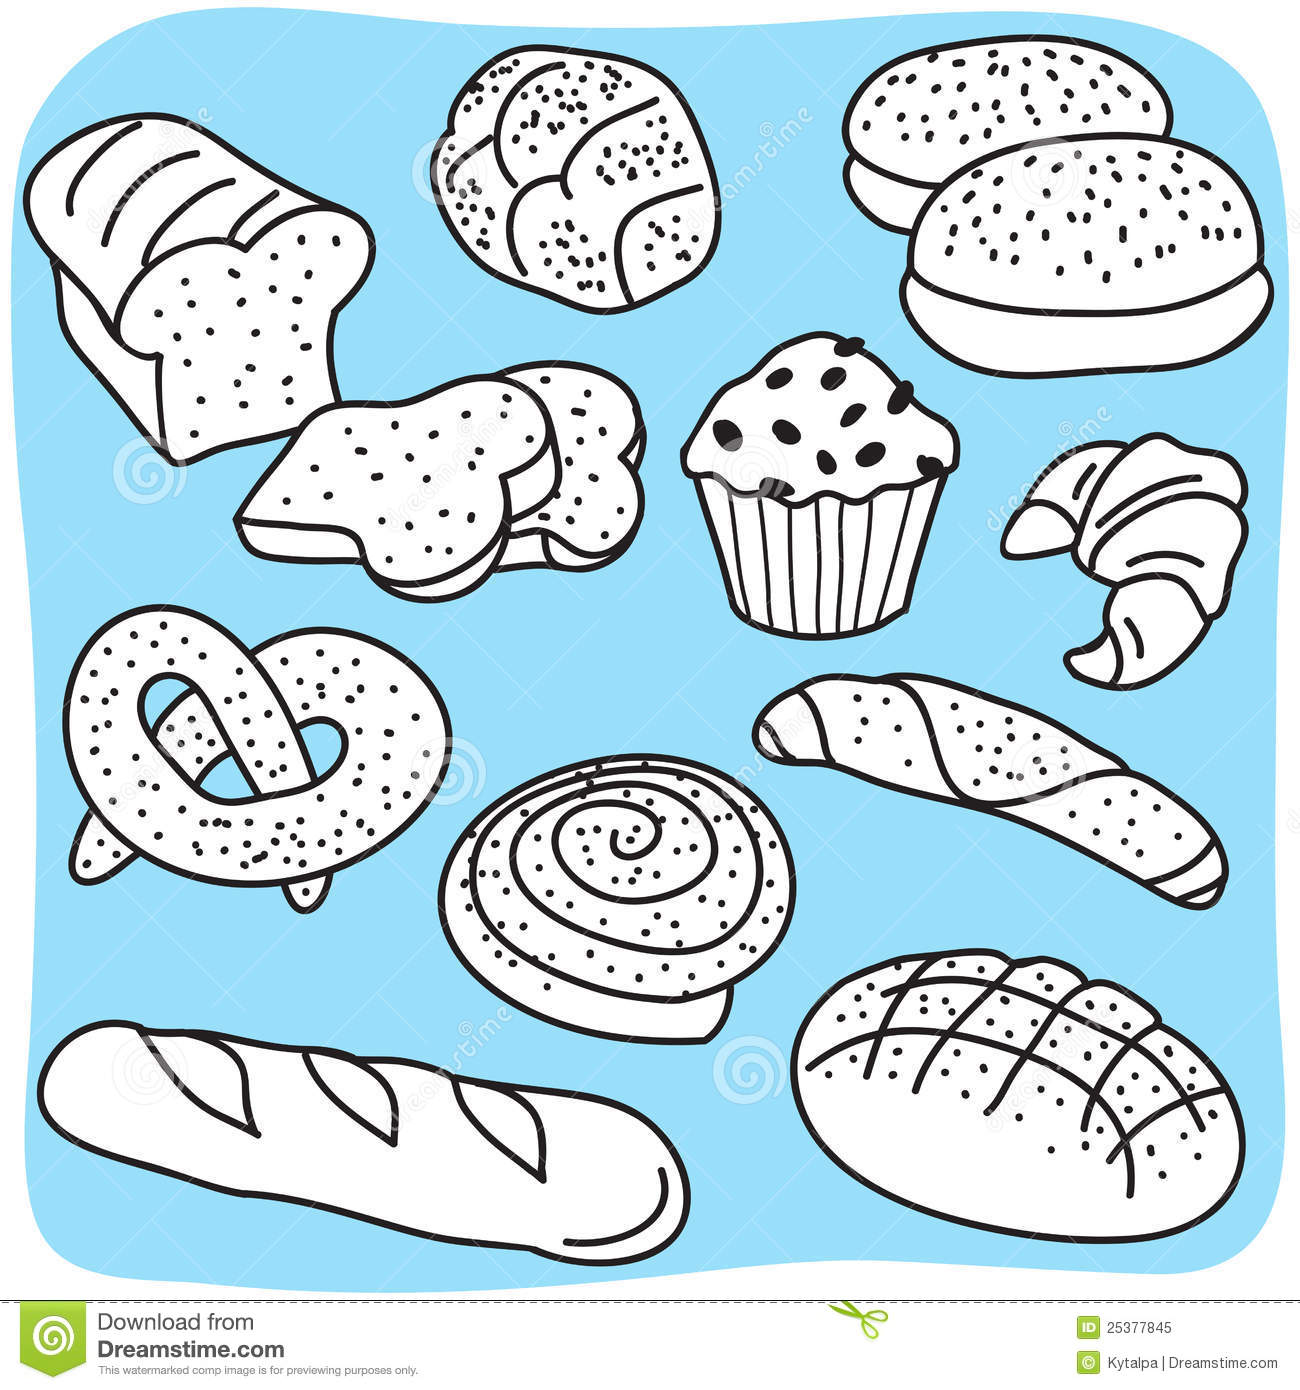 clip art images baked goods - photo #45